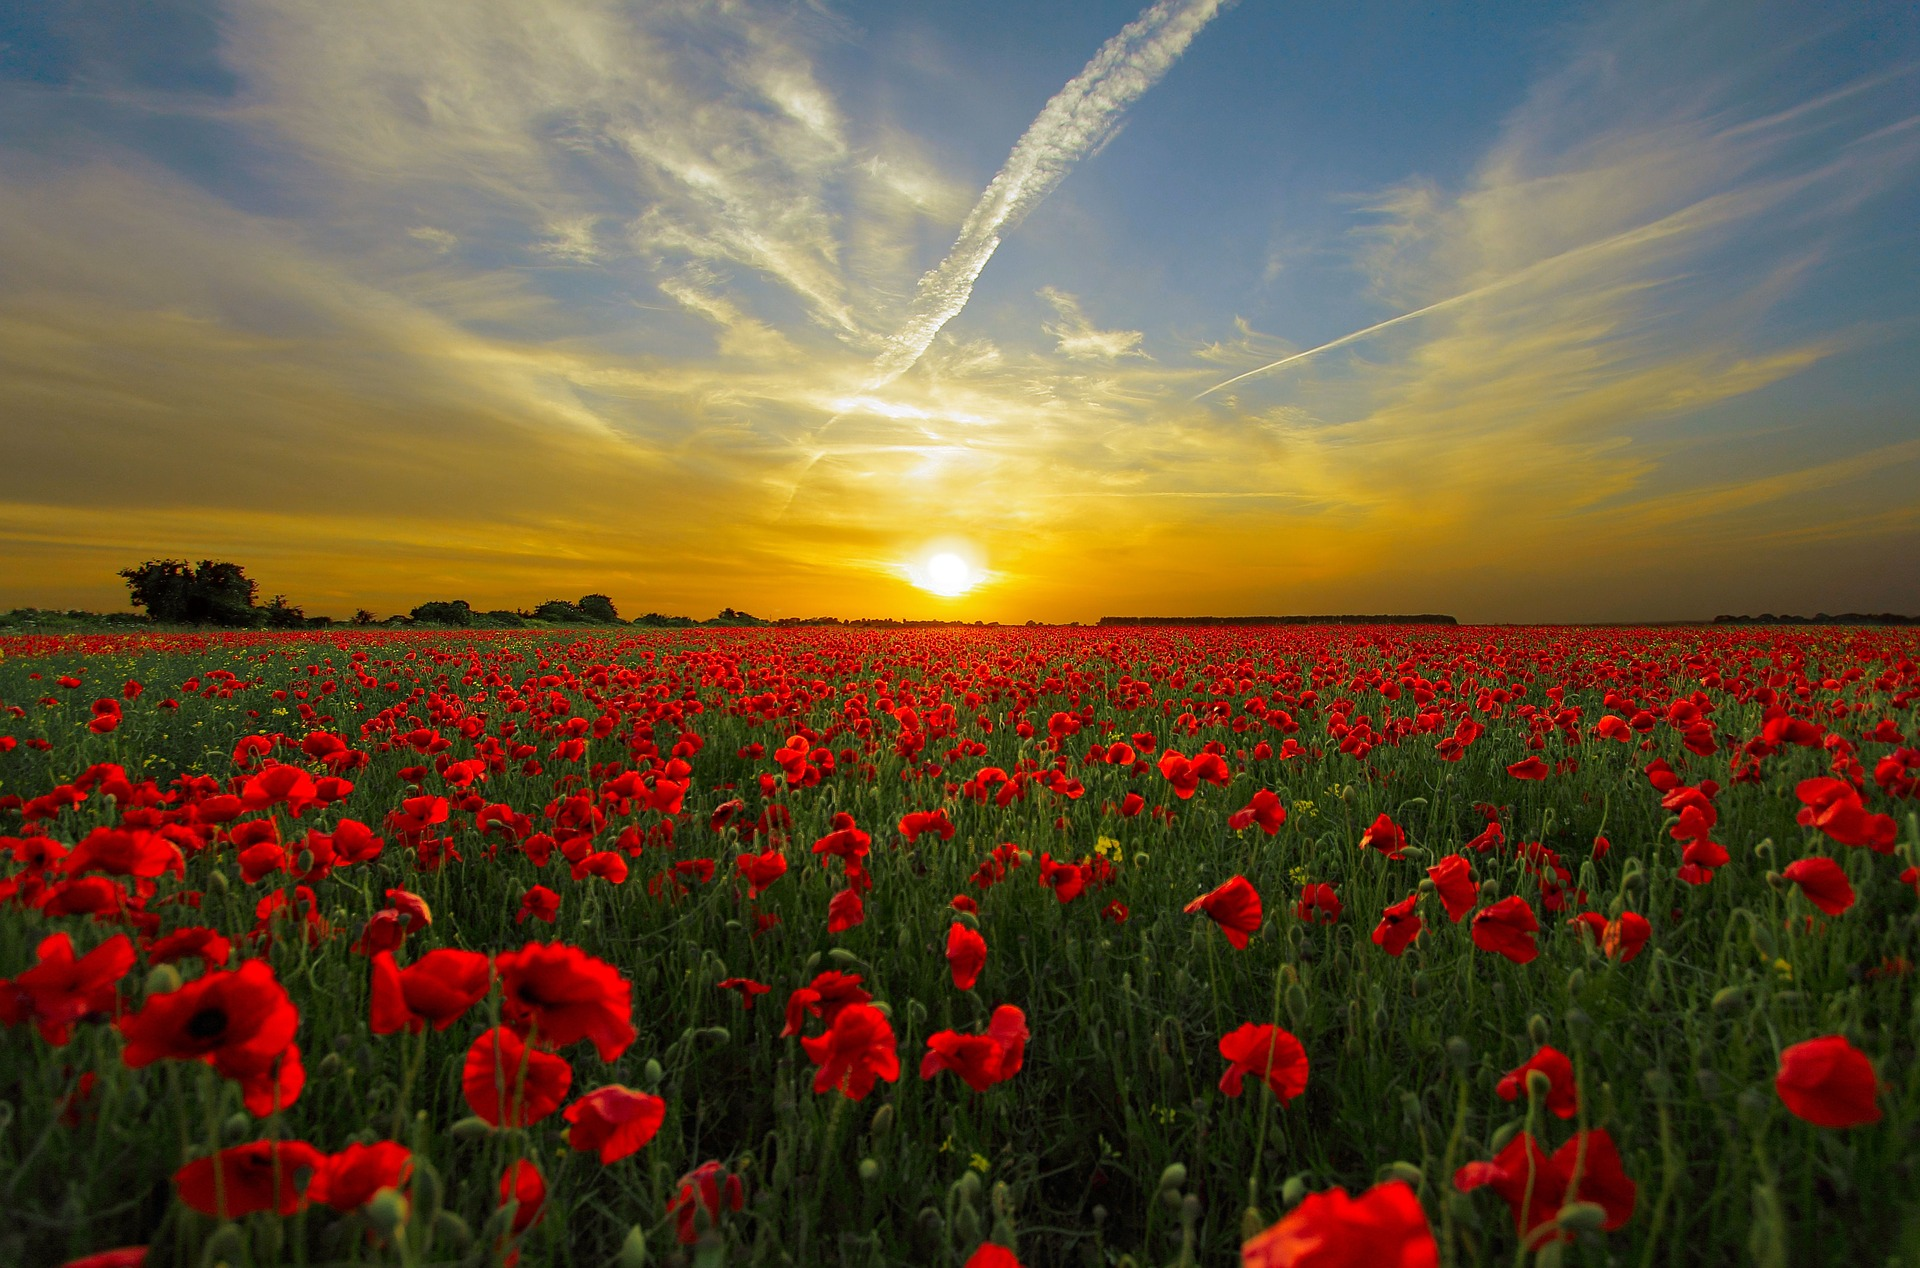 """ Sunset, field, poppy, sun, priroda "" by  Roman Grac  is  Public Domain ."